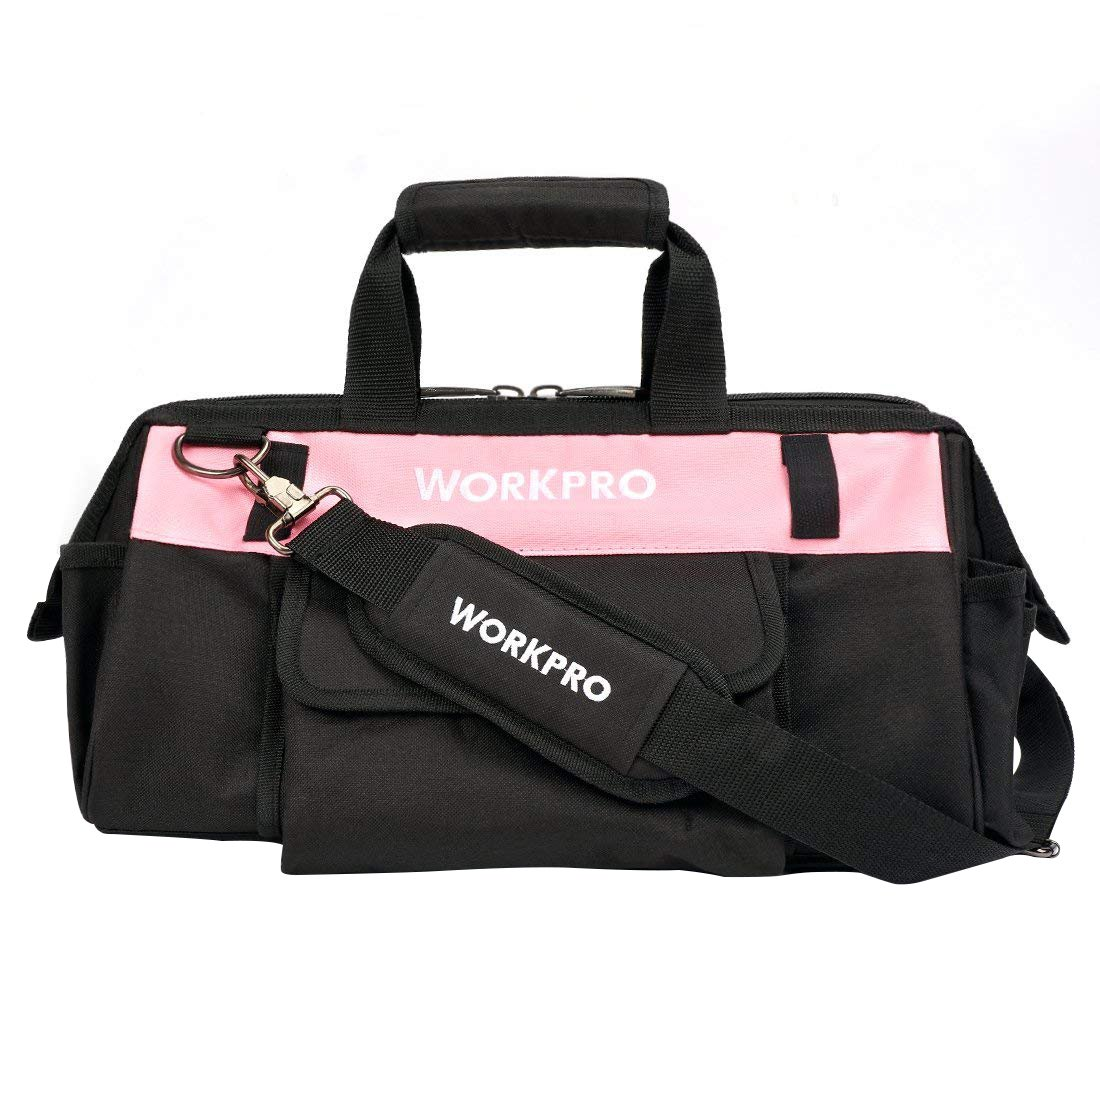 WORKPRO Tool Bag 16-inch Pink Lady Wide Mouth Open Tote Multiple Pockets with Adjustable Shoulder Strap